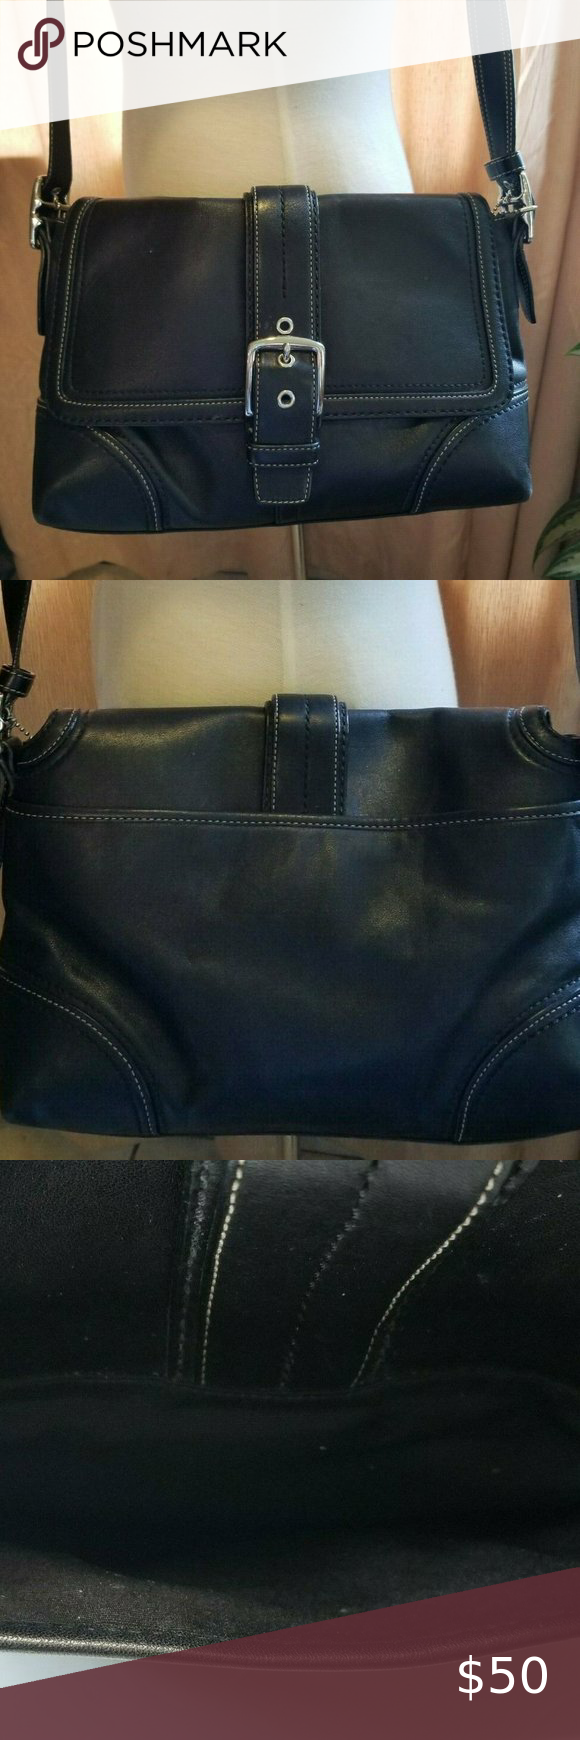 Coach Black Leather Flap Satchel Purse Shoulder Coach Black Leather Flap Satchel Purse Shoulder Bag - G0878-F12606. Purse is very clean in very good used condition. Please note that photos are a part of the description. Please contact me if you have any questions or if you need more photos. A couple little scuffs on the bottom and some wear on the bottom corners, See Photos   Thank you for shopping at my store Coach Bags Shoulder Bags